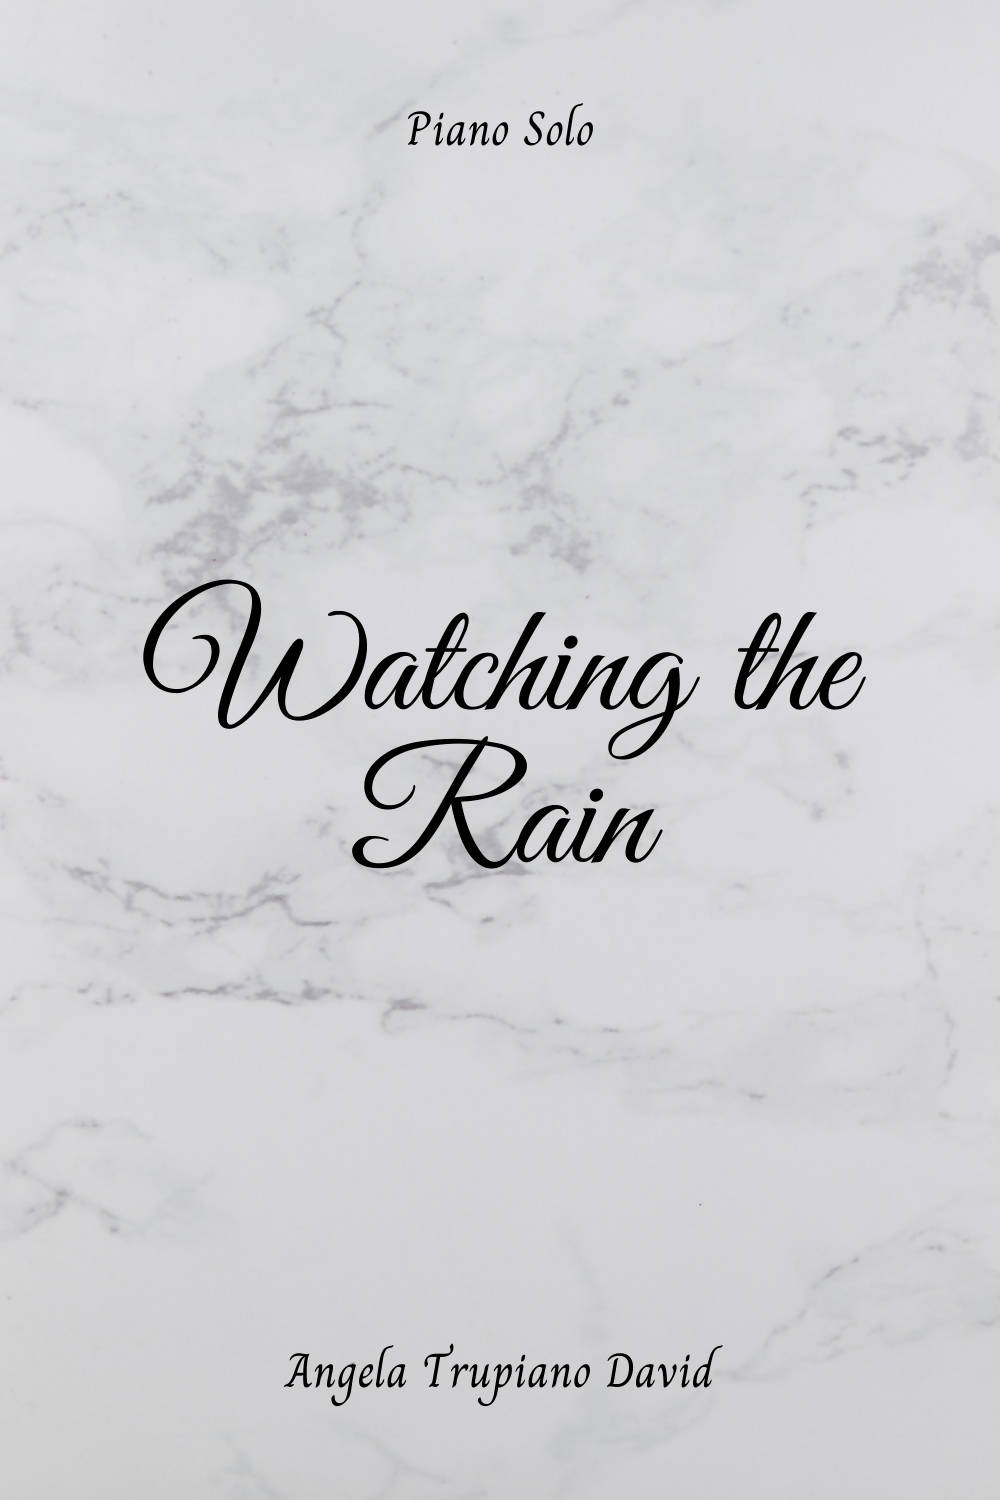 Watching the Rain (Intermediate Piano Solo)